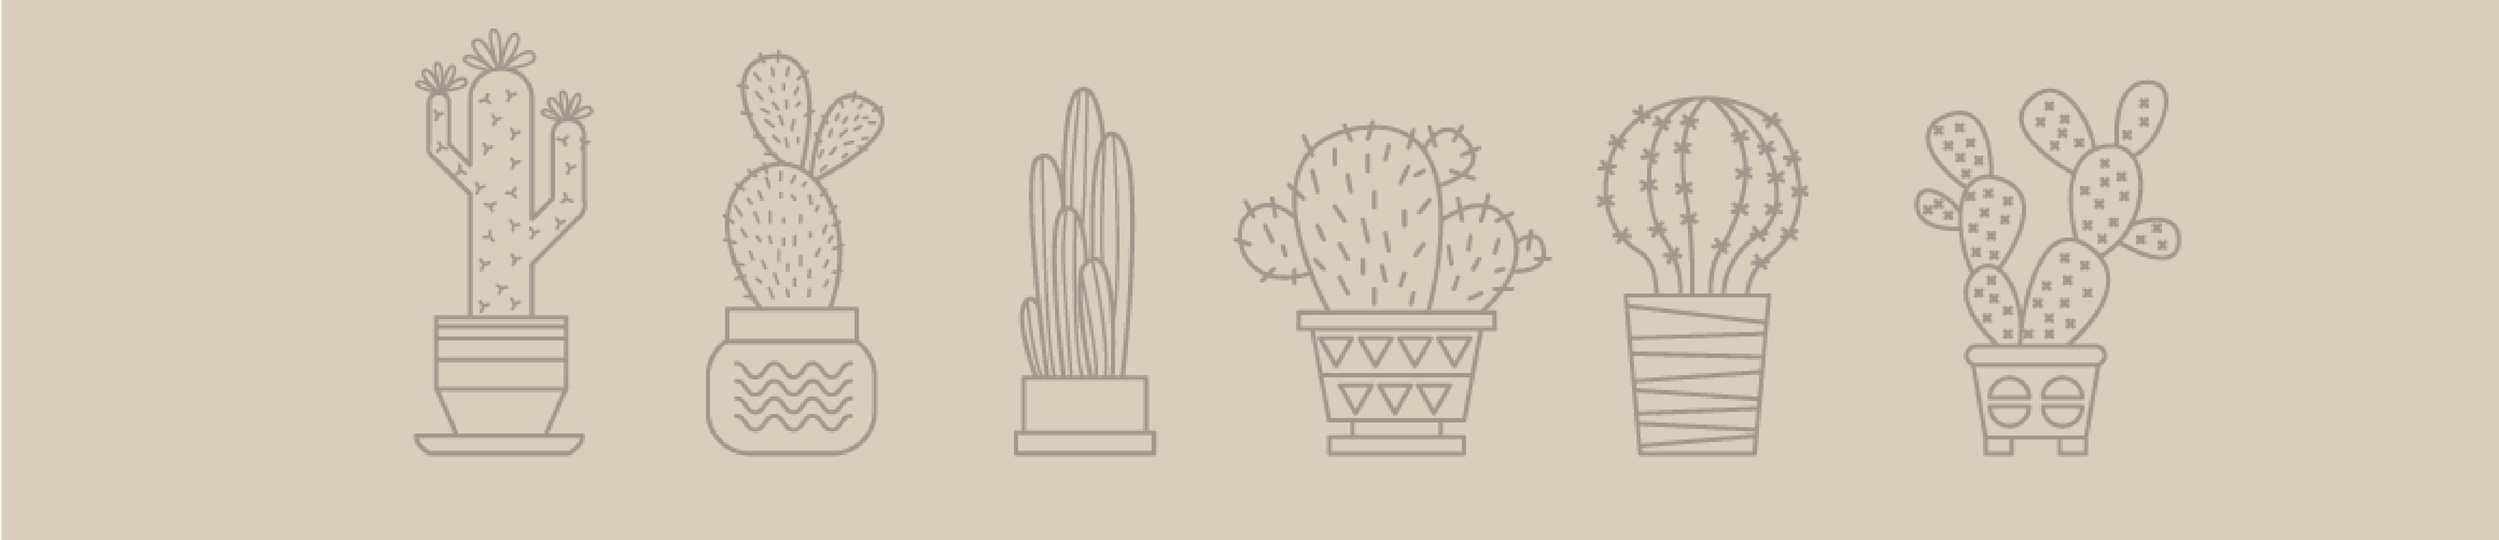 cactus+ucons+large+filtered.jpg